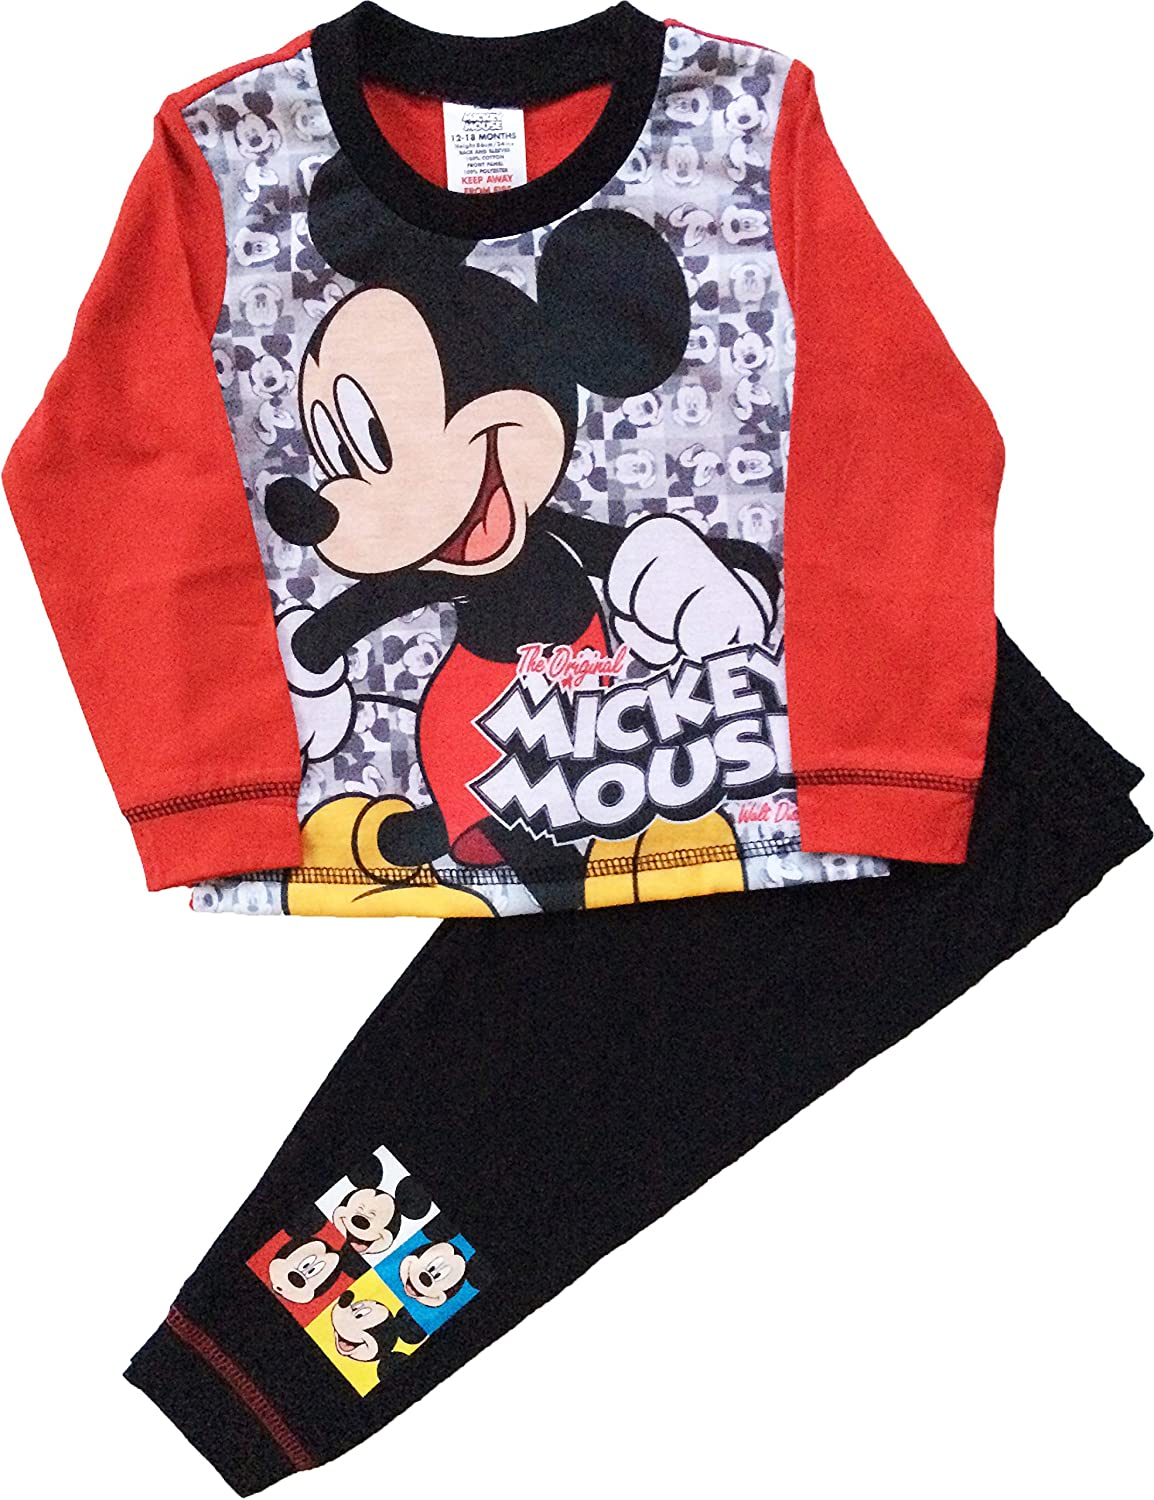 Boy/'s Disney Pyjamas DONALD DUCK or MICKEY MOUSE PJs Sizes 12 months-4 years